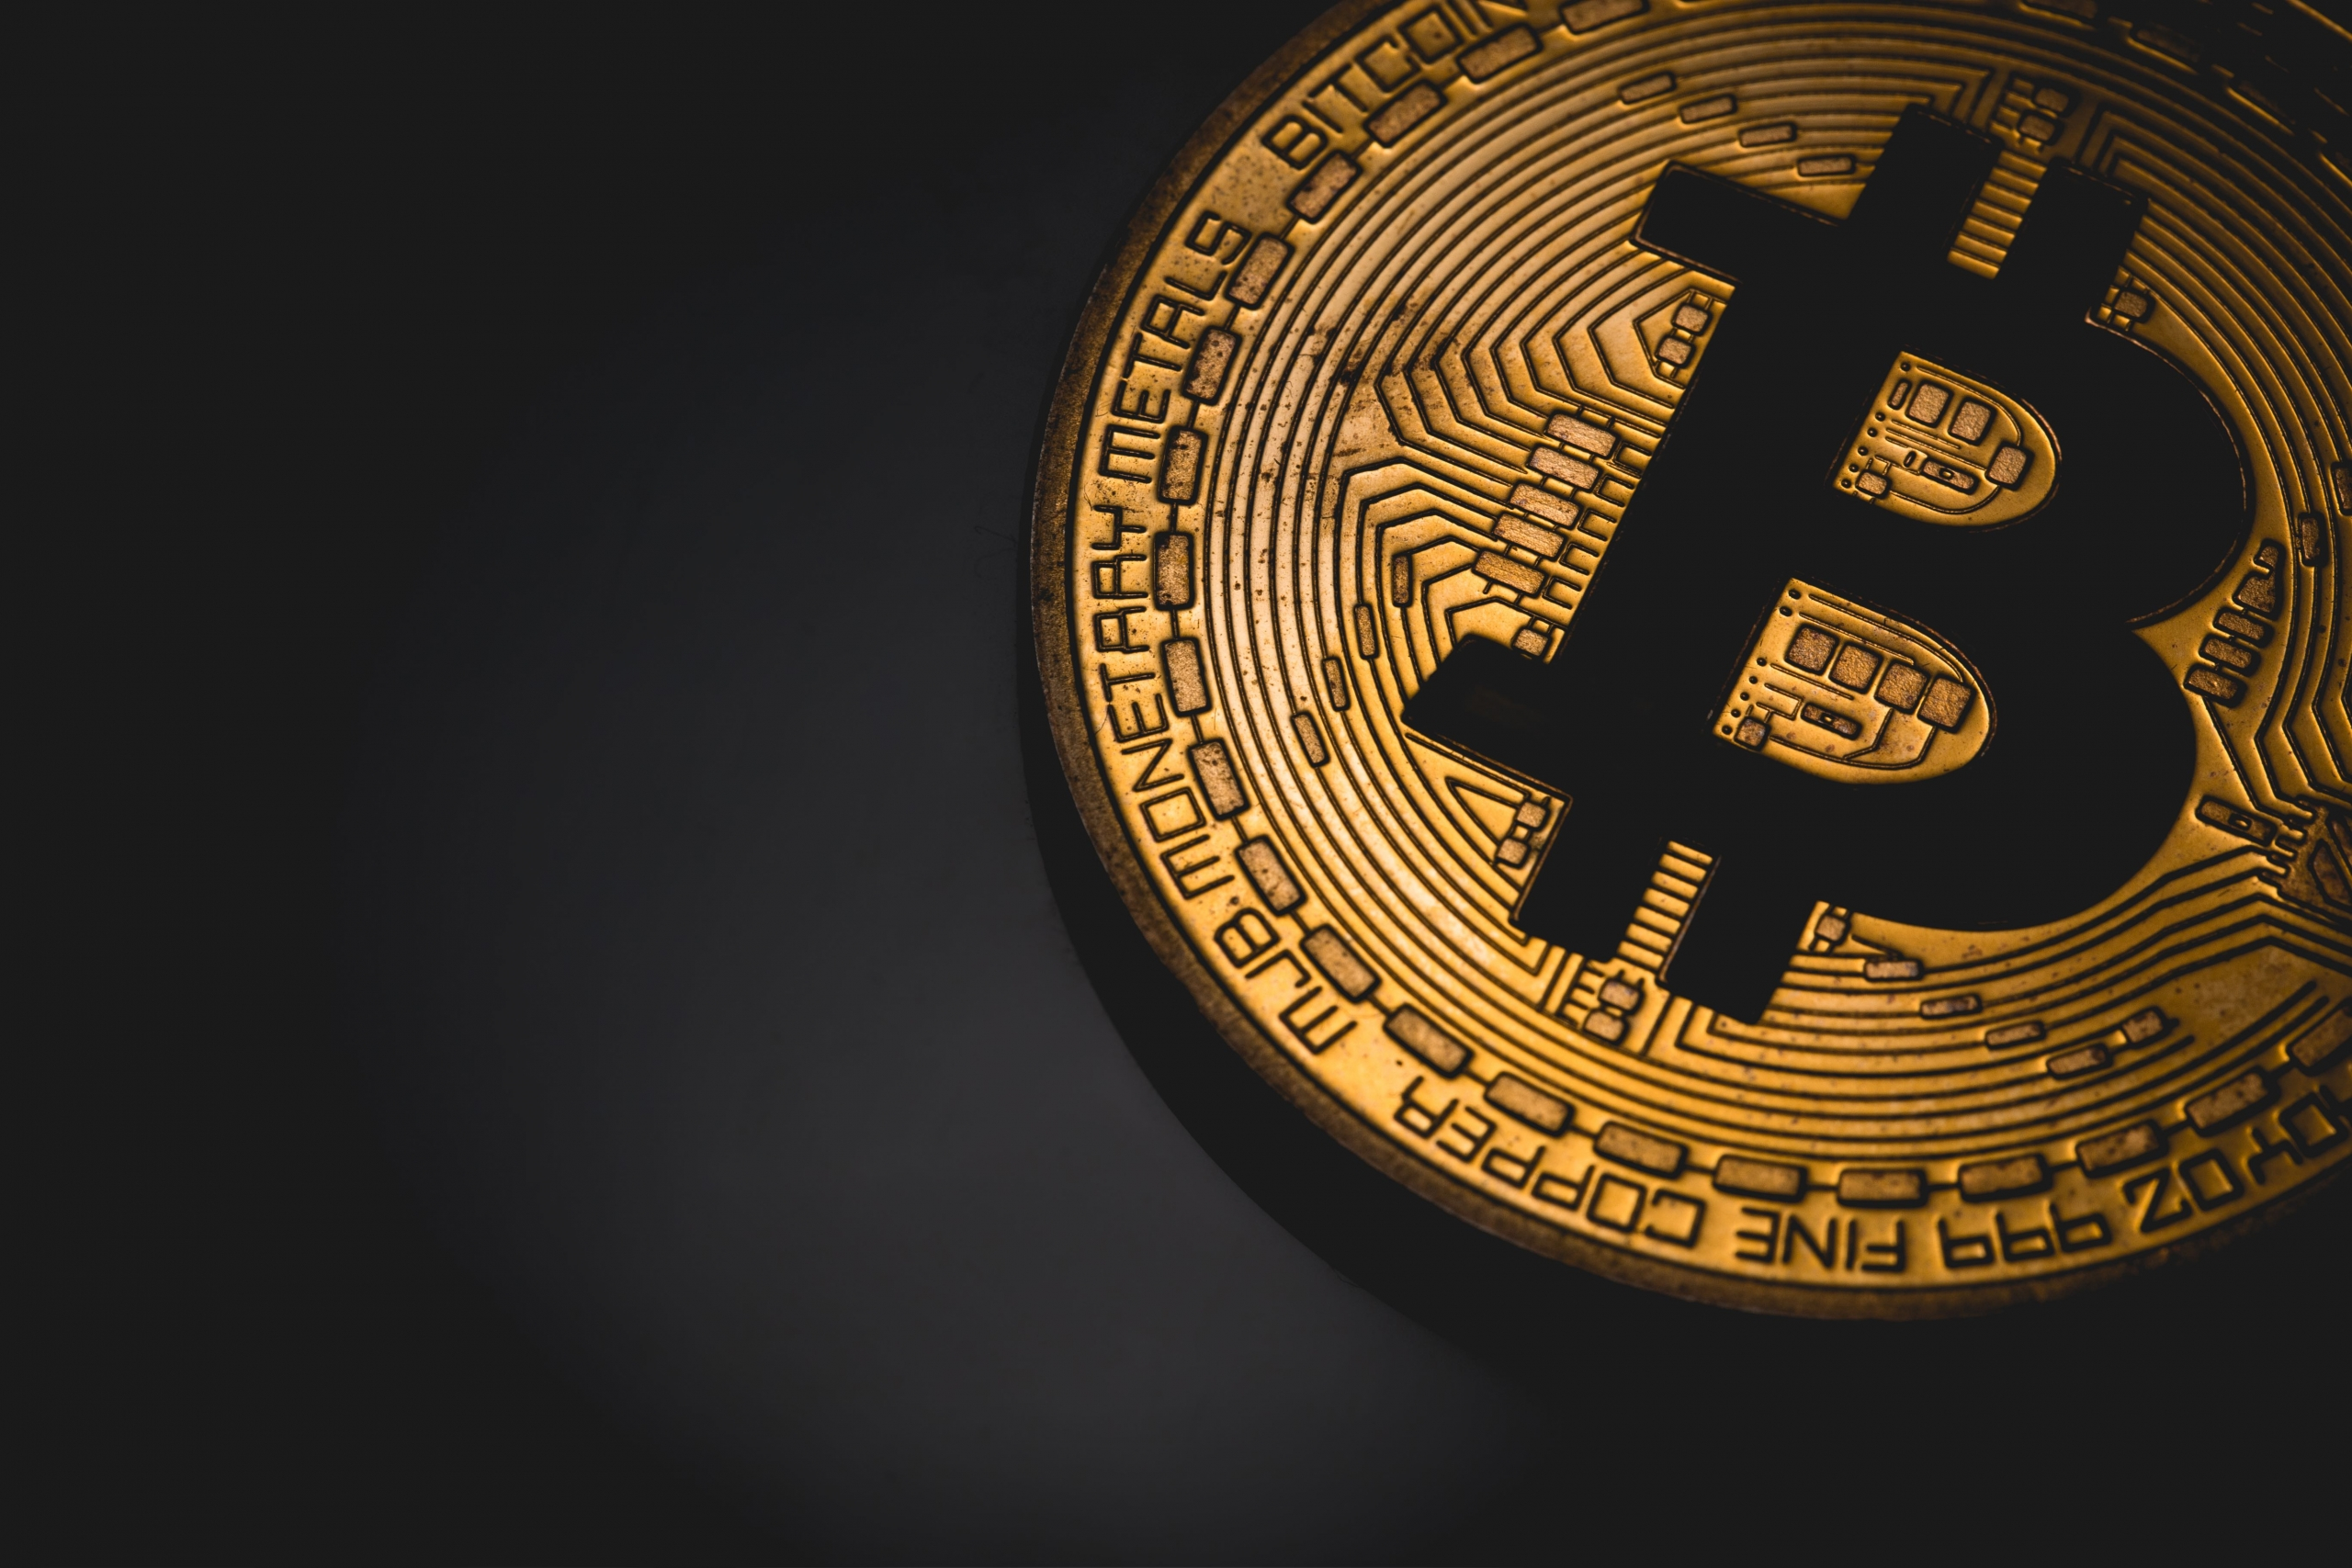 A complete analysis prediction of Bitcoin price